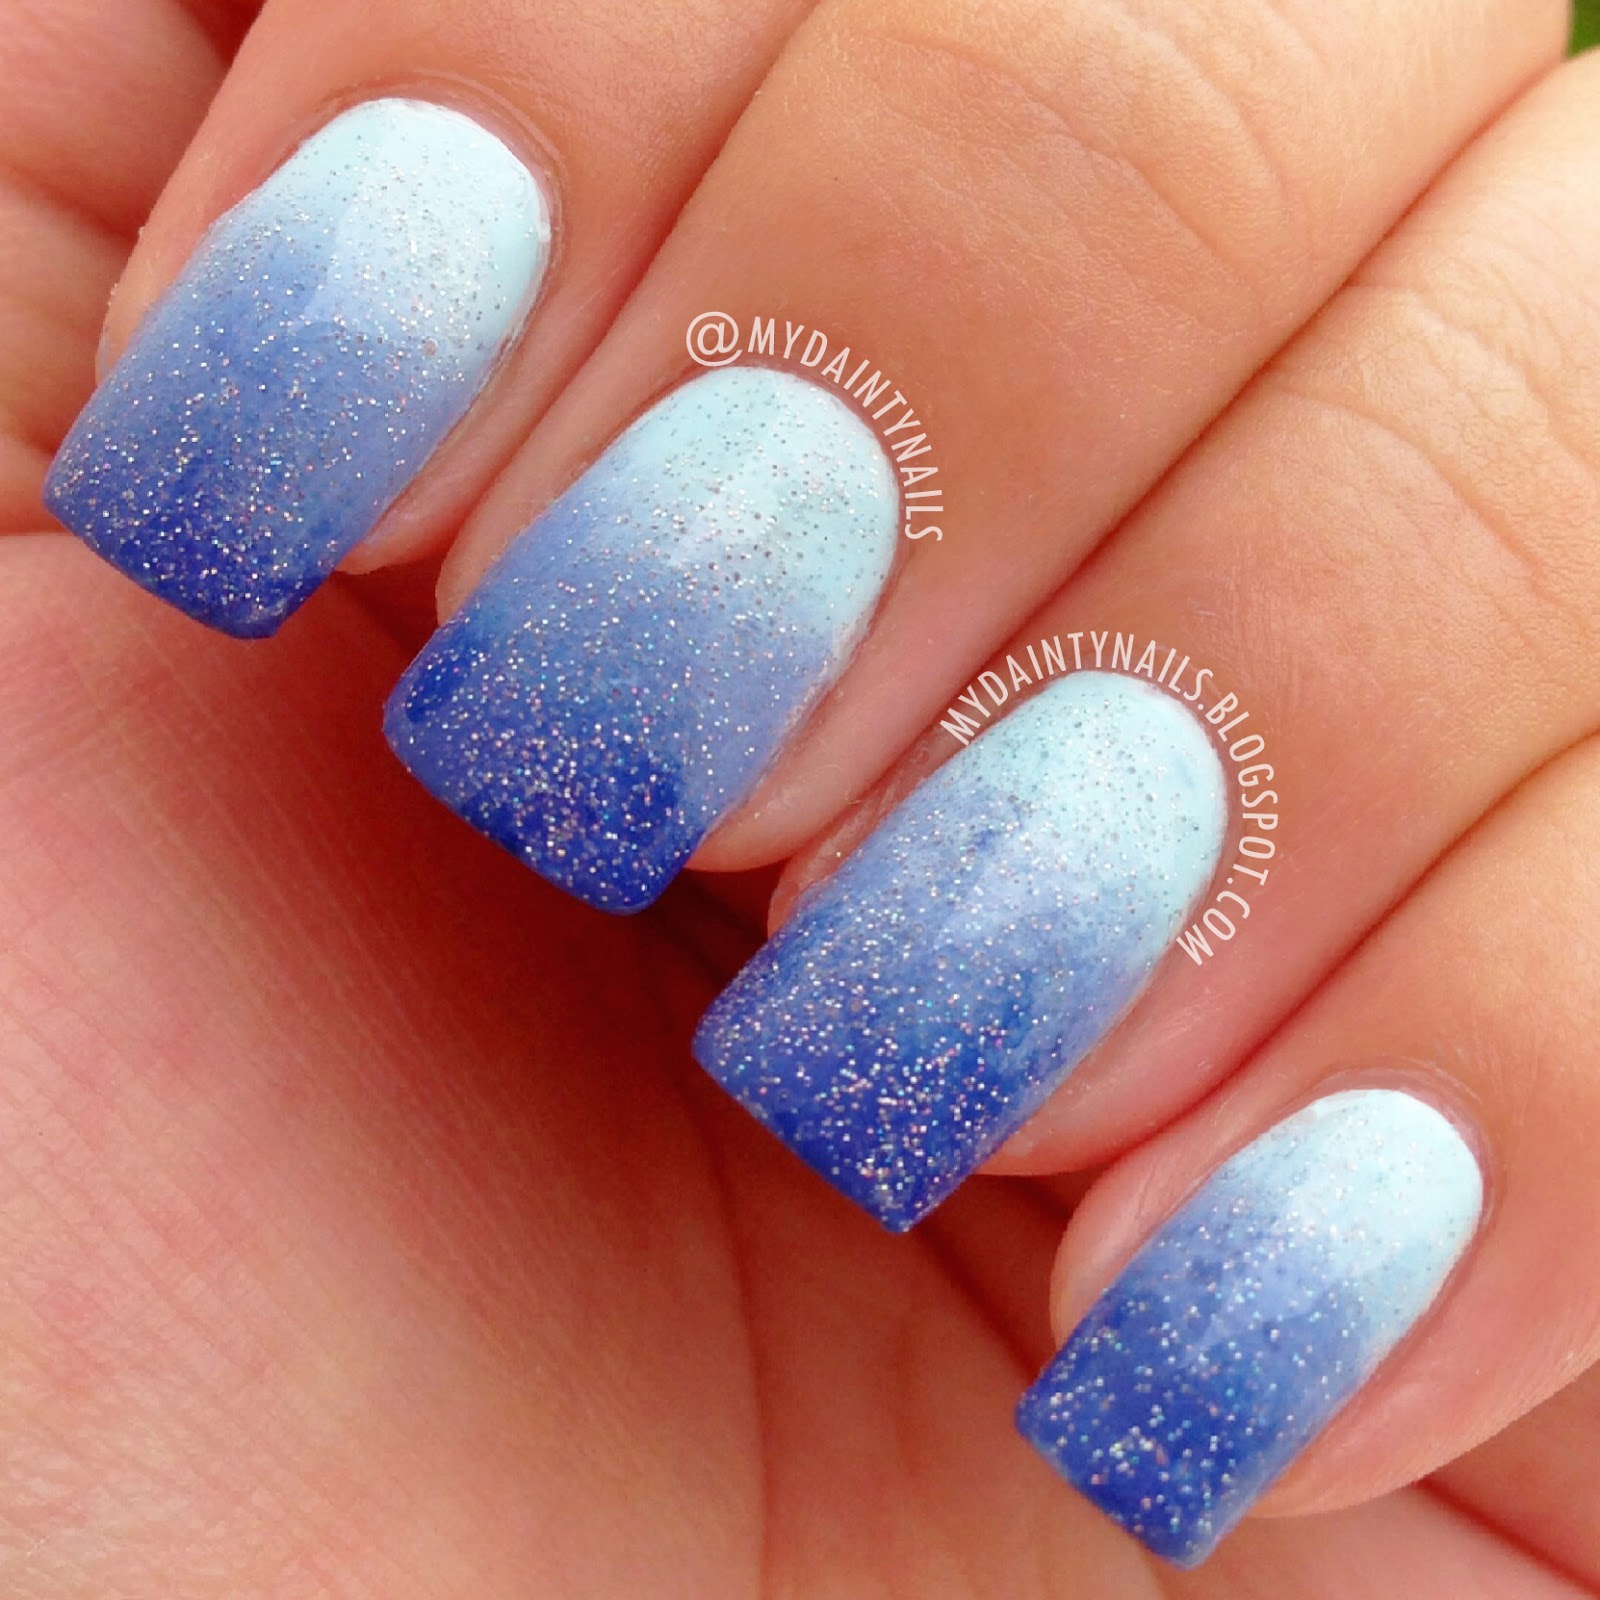 White And Blue Nail Ideas For Prom: My Dainty Nails: April 2013